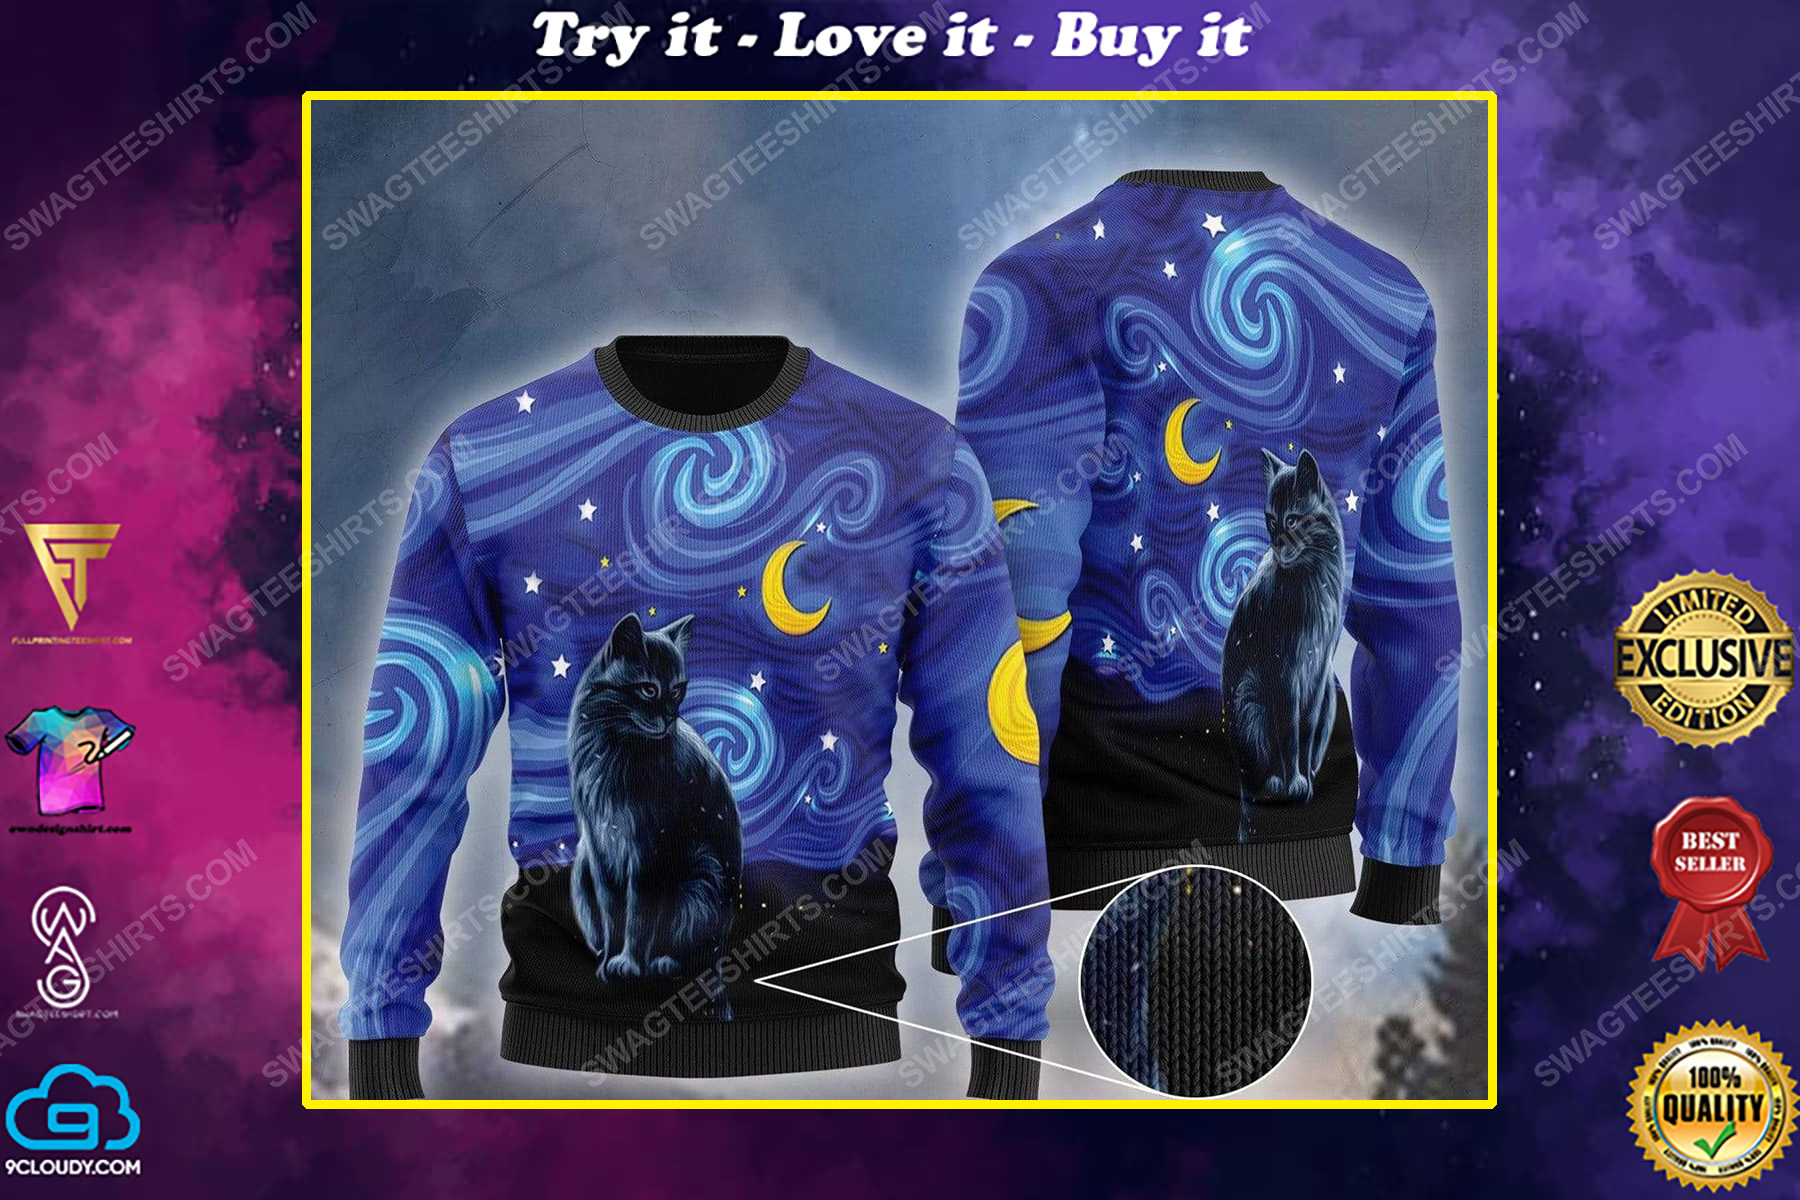 Black cat vincent van gogh starry night ugly christmas sweater